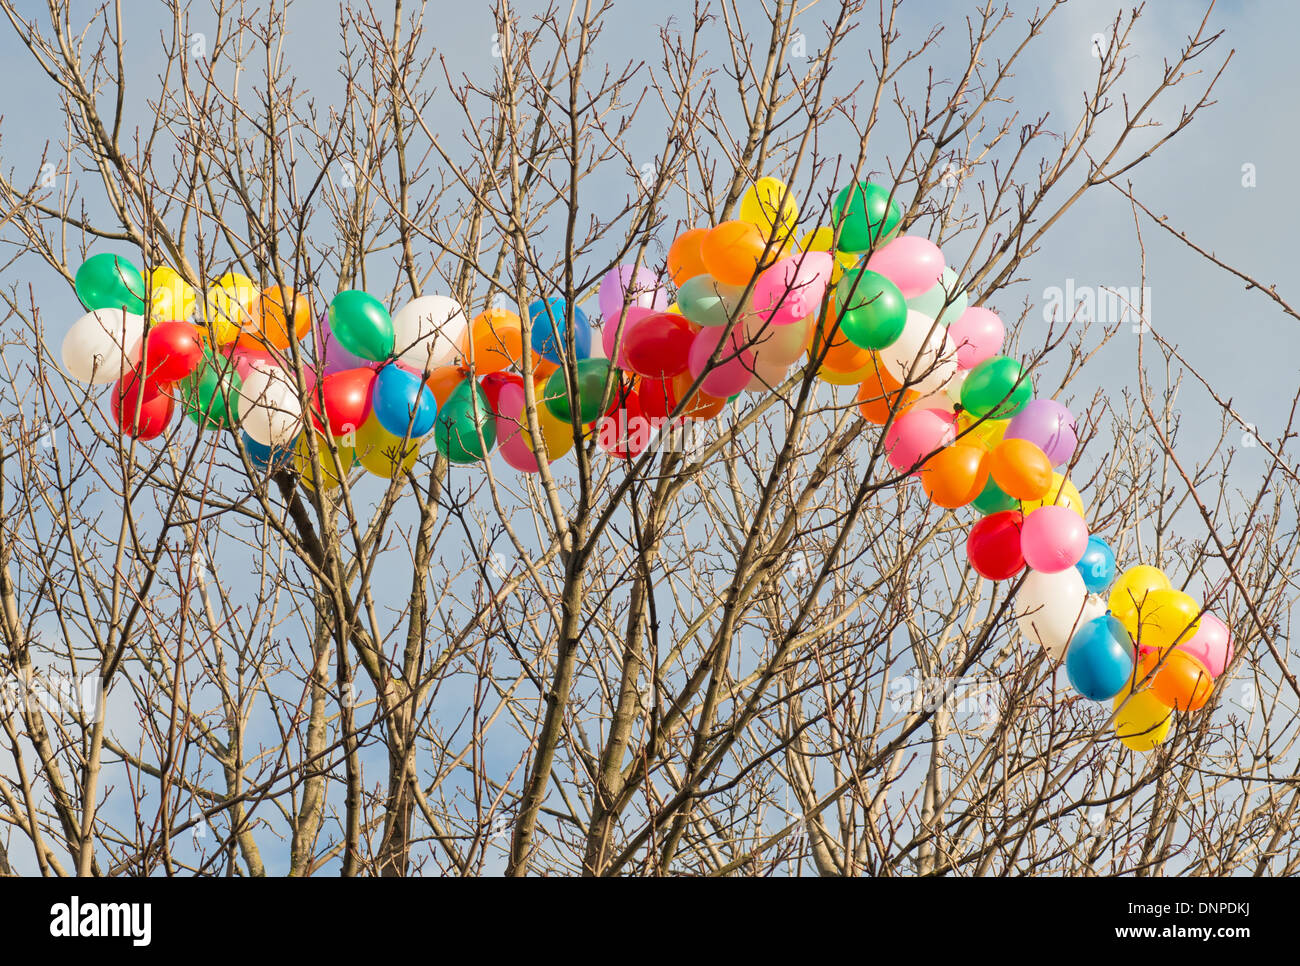 String of colourful balloons caught in the branches of a tree South Shields, north east England UK Stock Photo